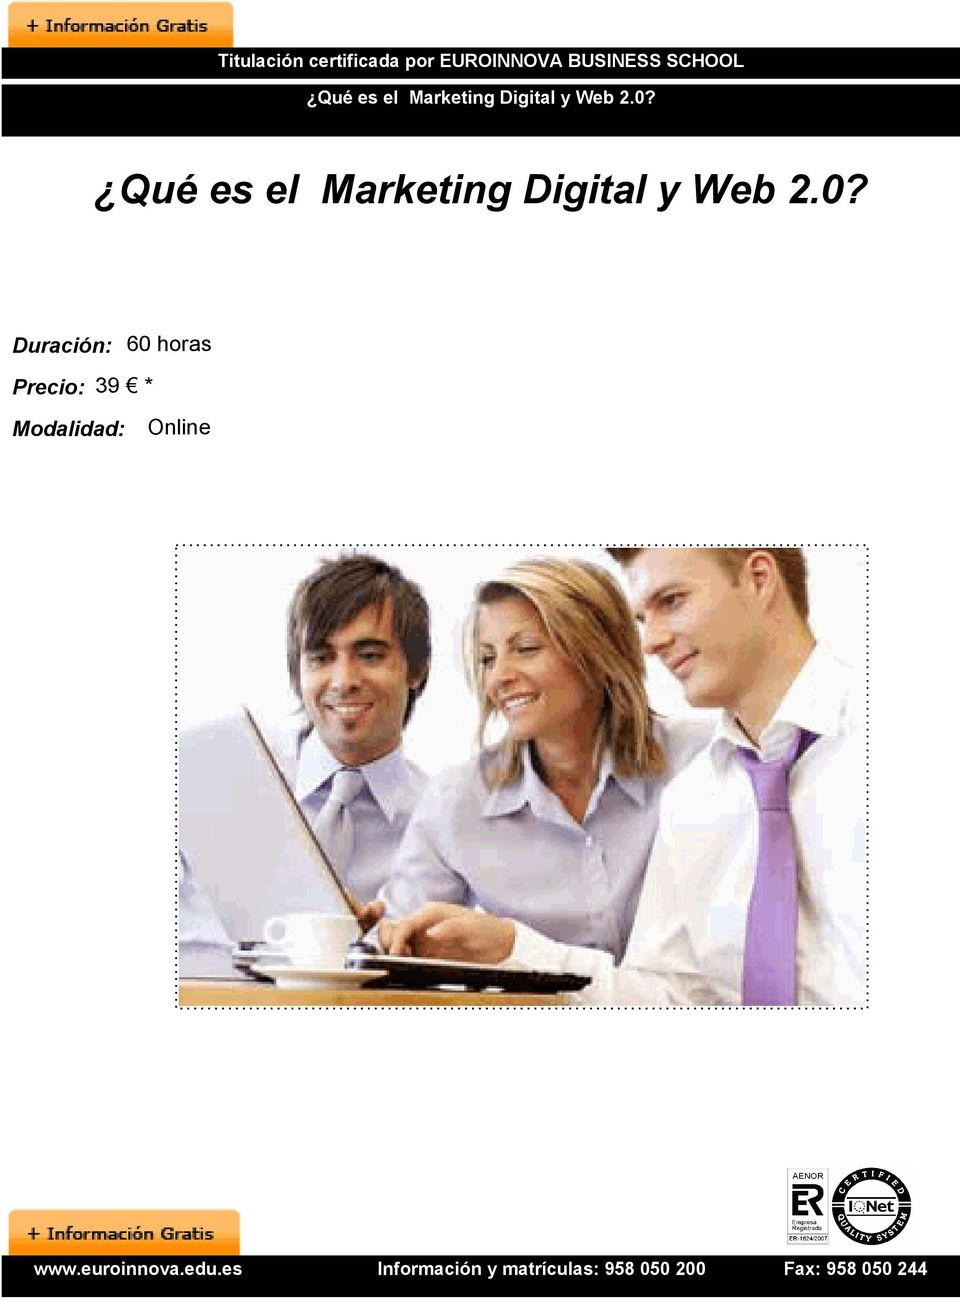 Web 2.0? Qué es el Marketing Digital y Web 2.